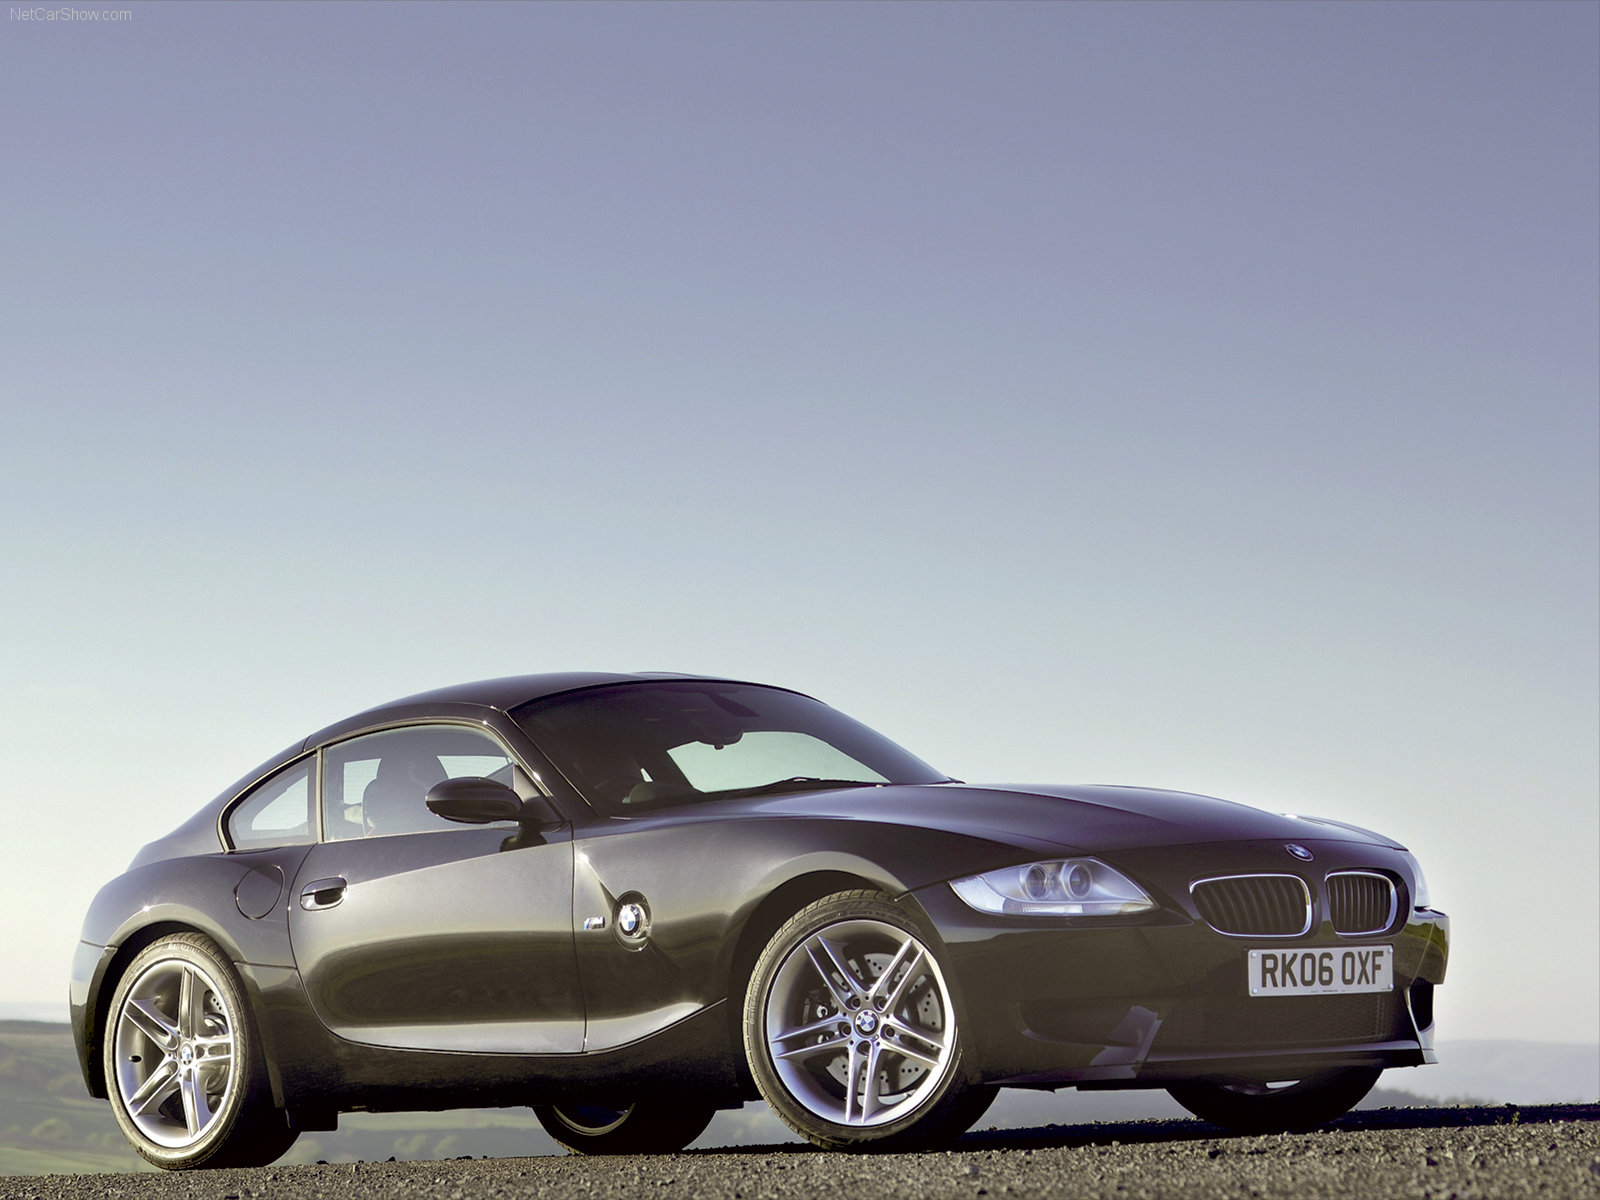 Bmw Z4 M Coupe Picture 37031 Bmw Photo Gallery Carsbase Com